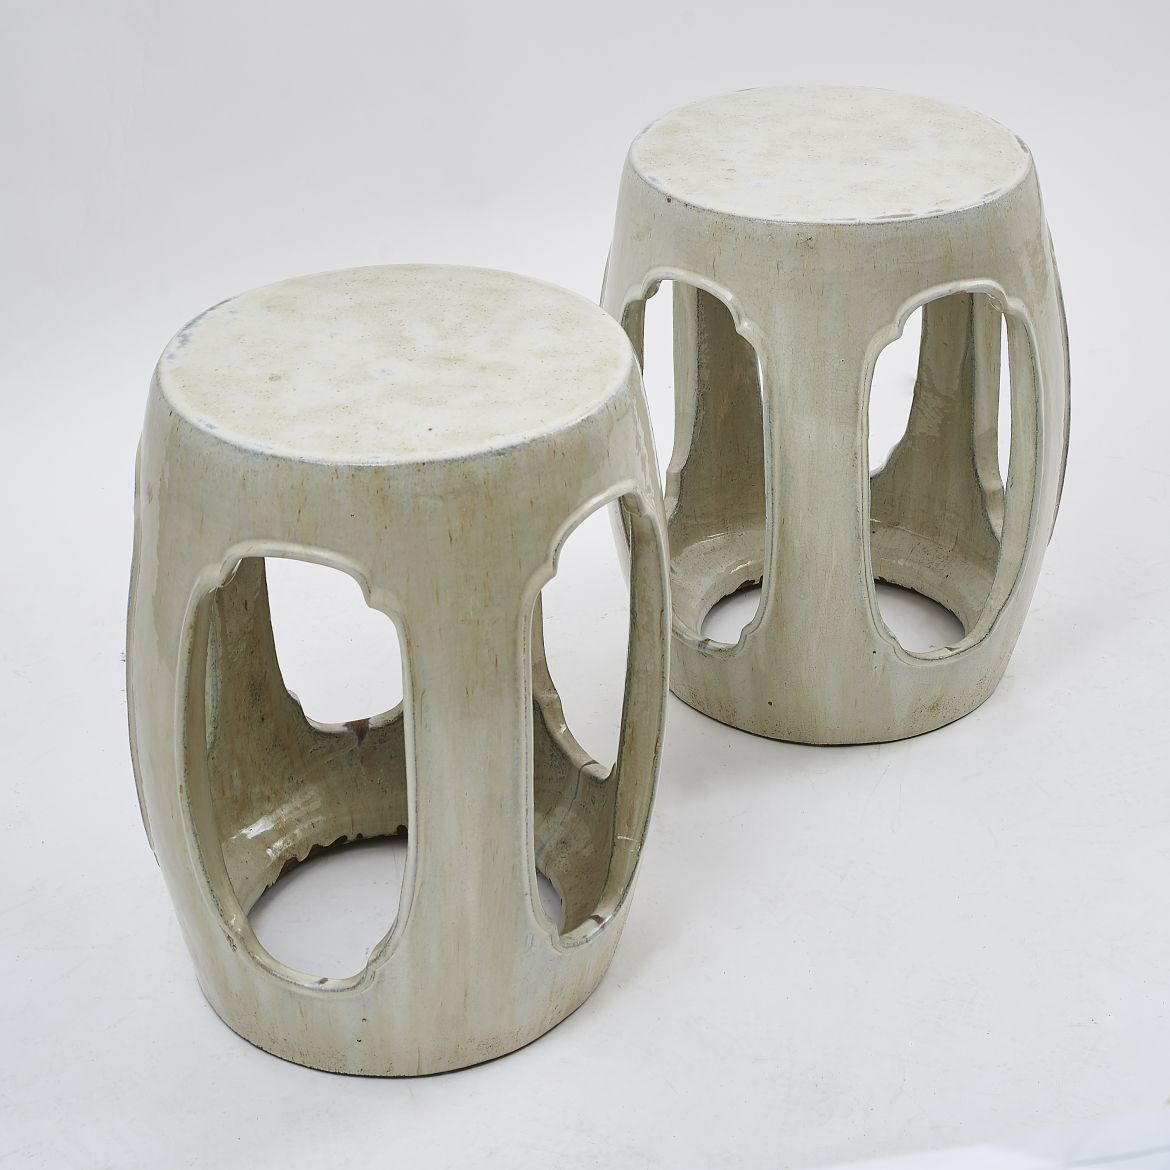 Chinese Stools With Oval Cut-outs